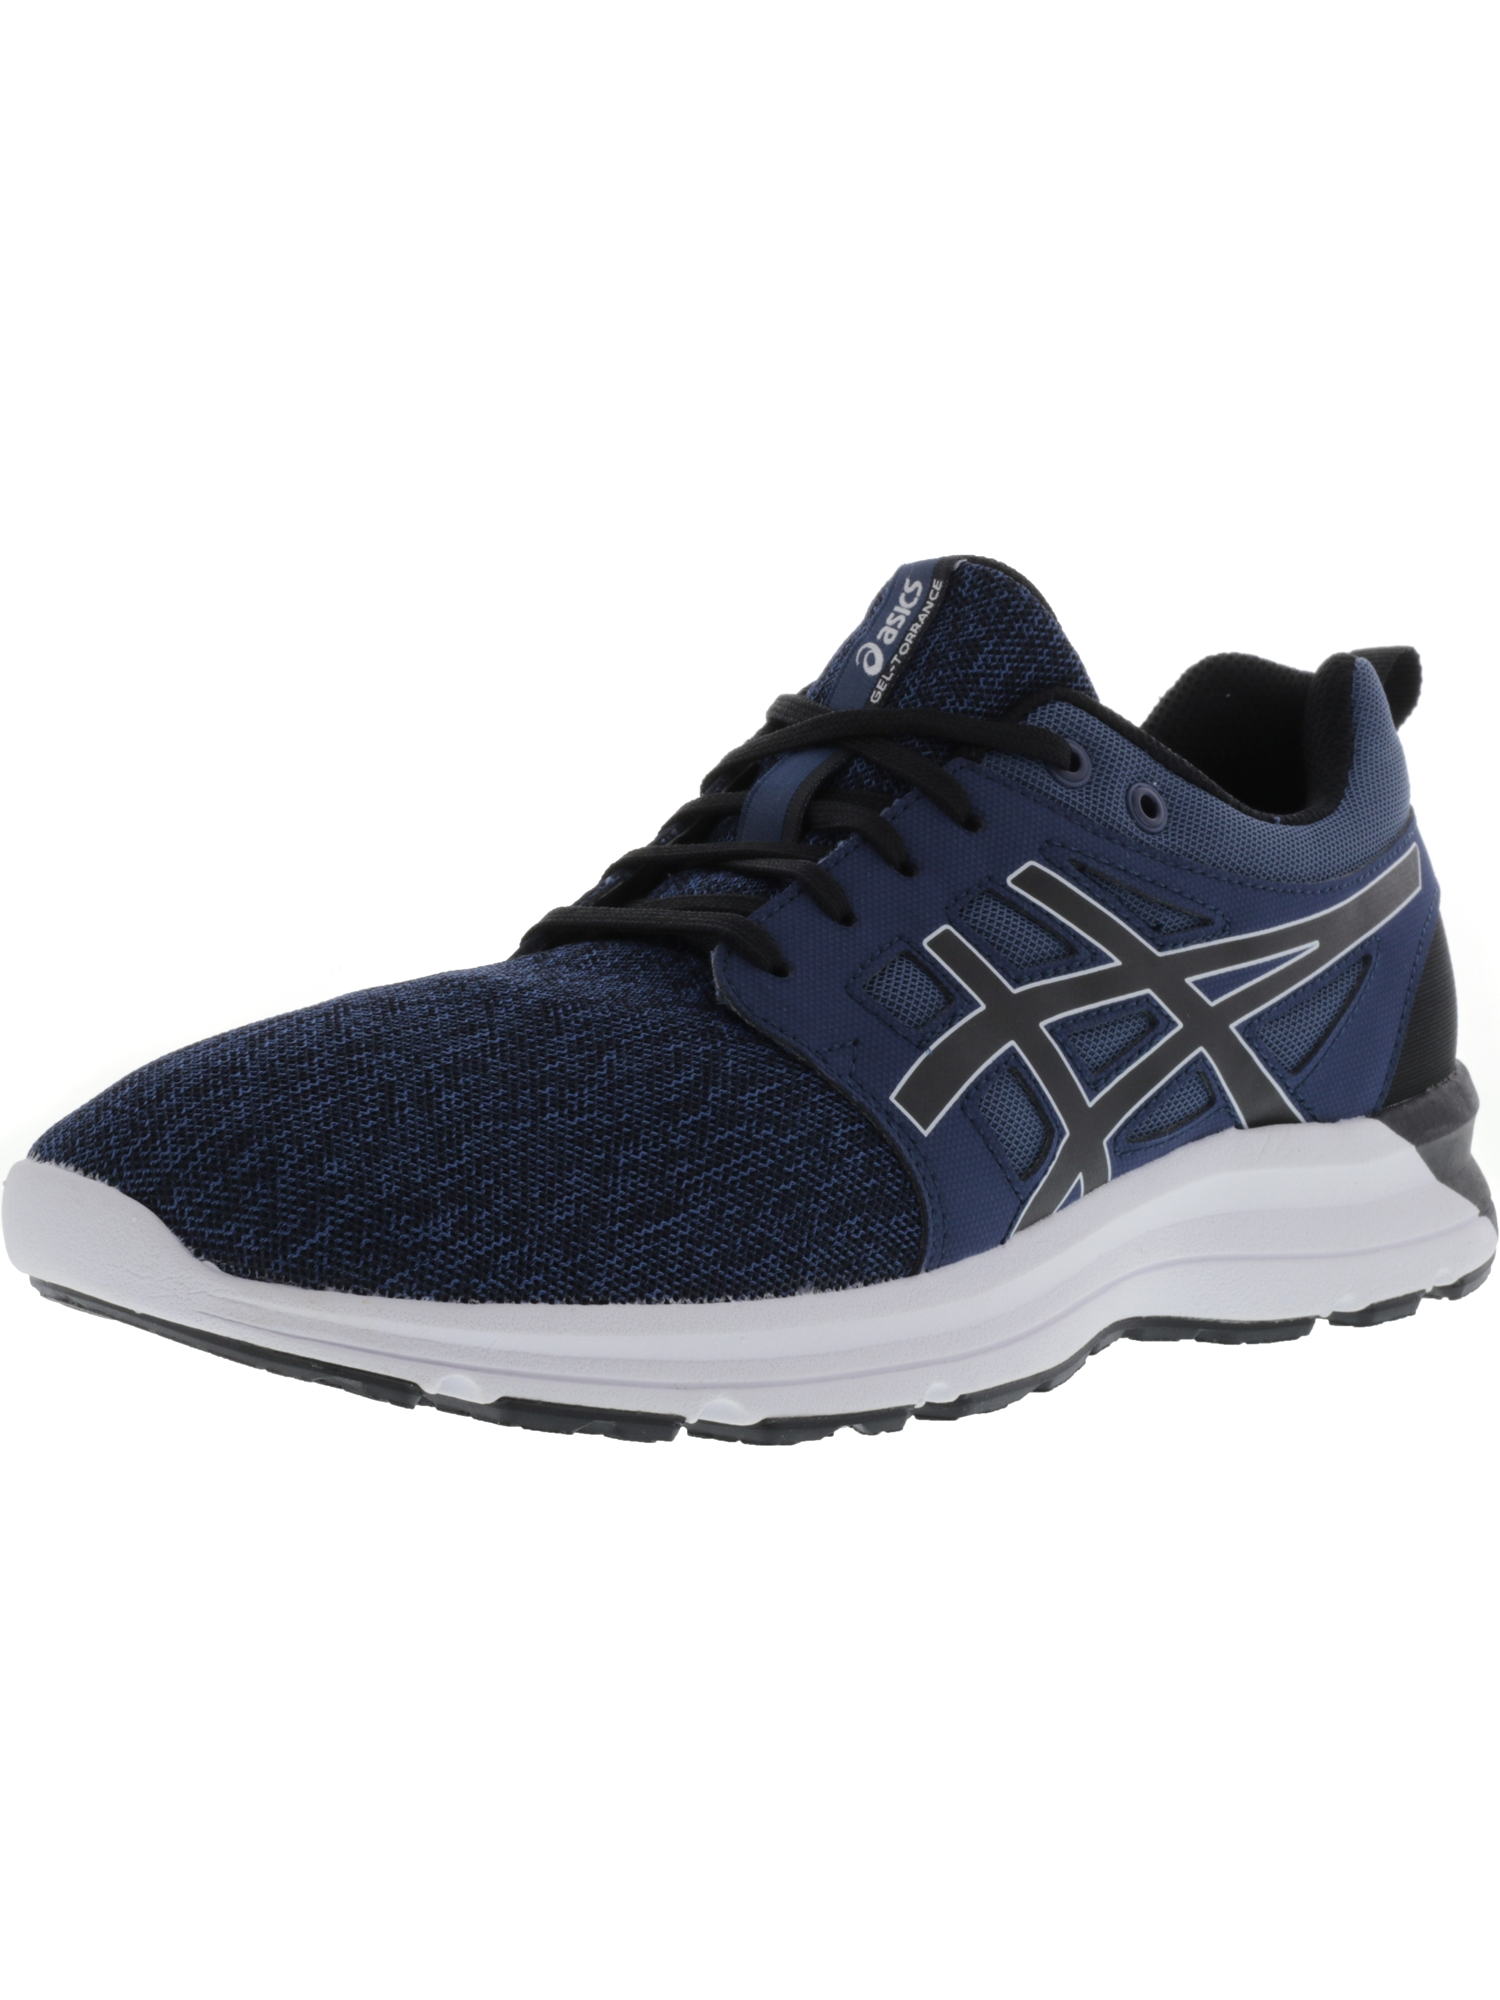 ASICS Men's Gel-Torrance Running Shoe